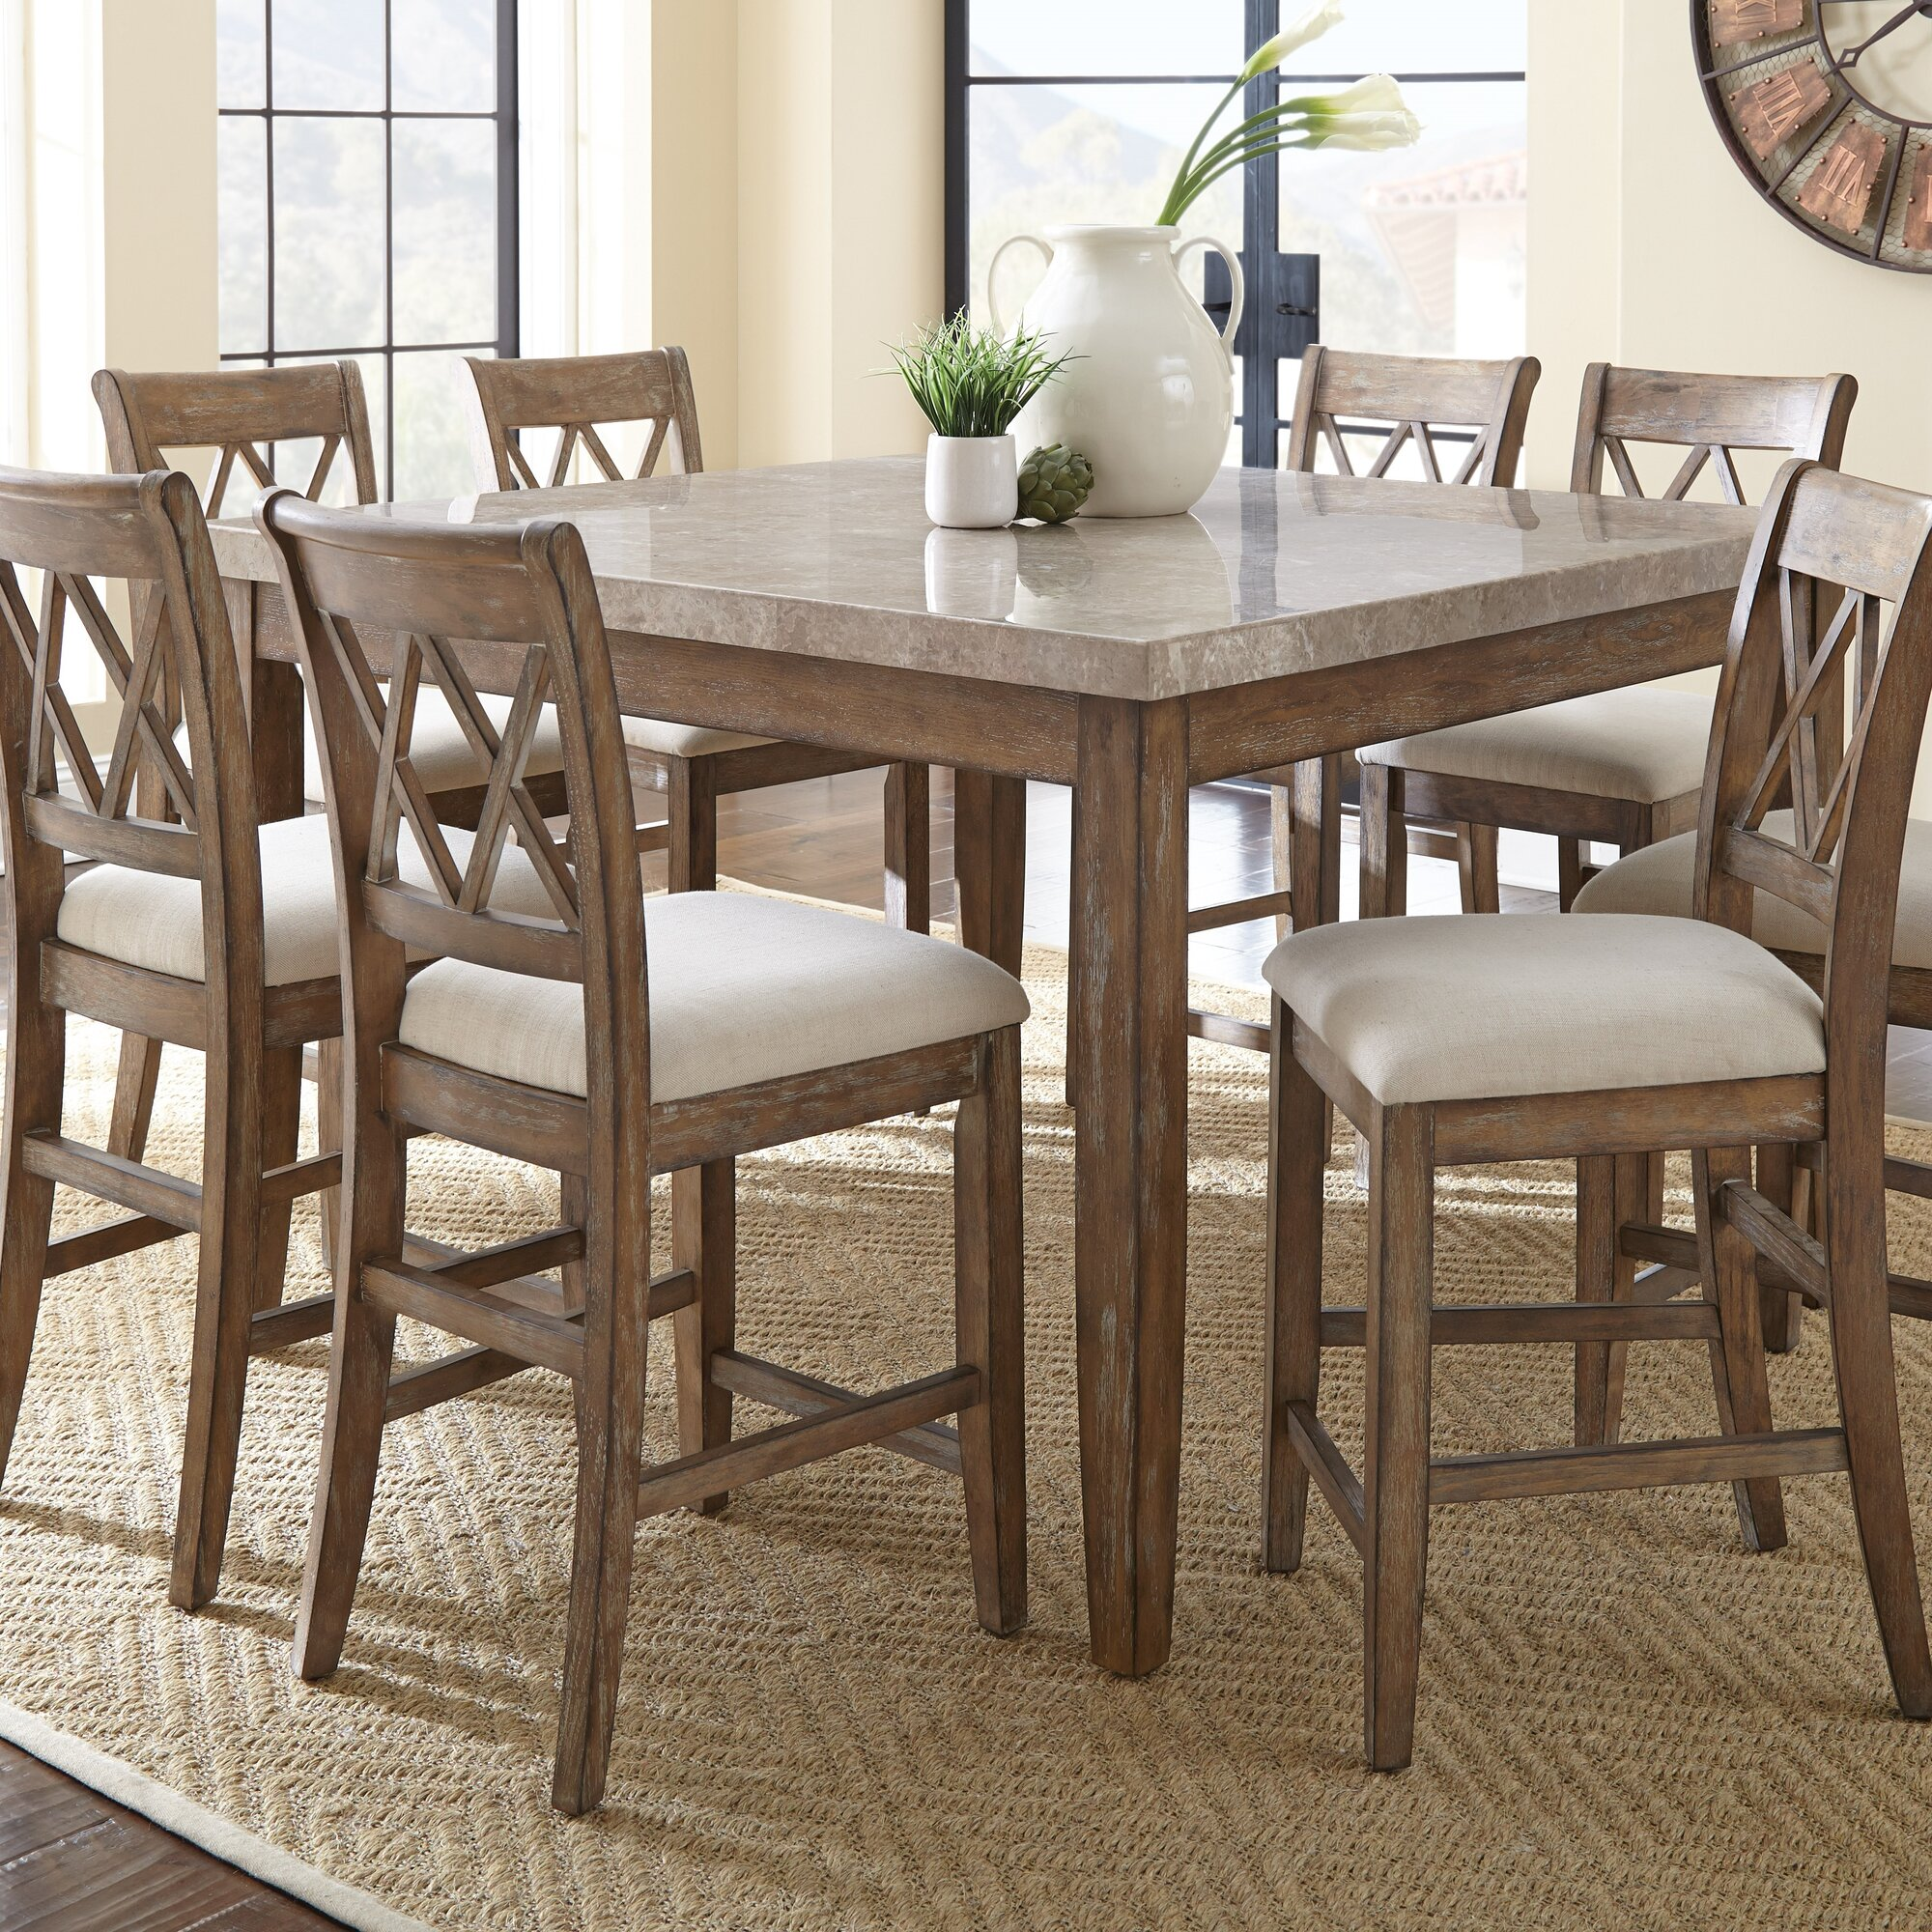 Counter Height Dining Sets Youll Love Wayfair  High Top Dining Room Table